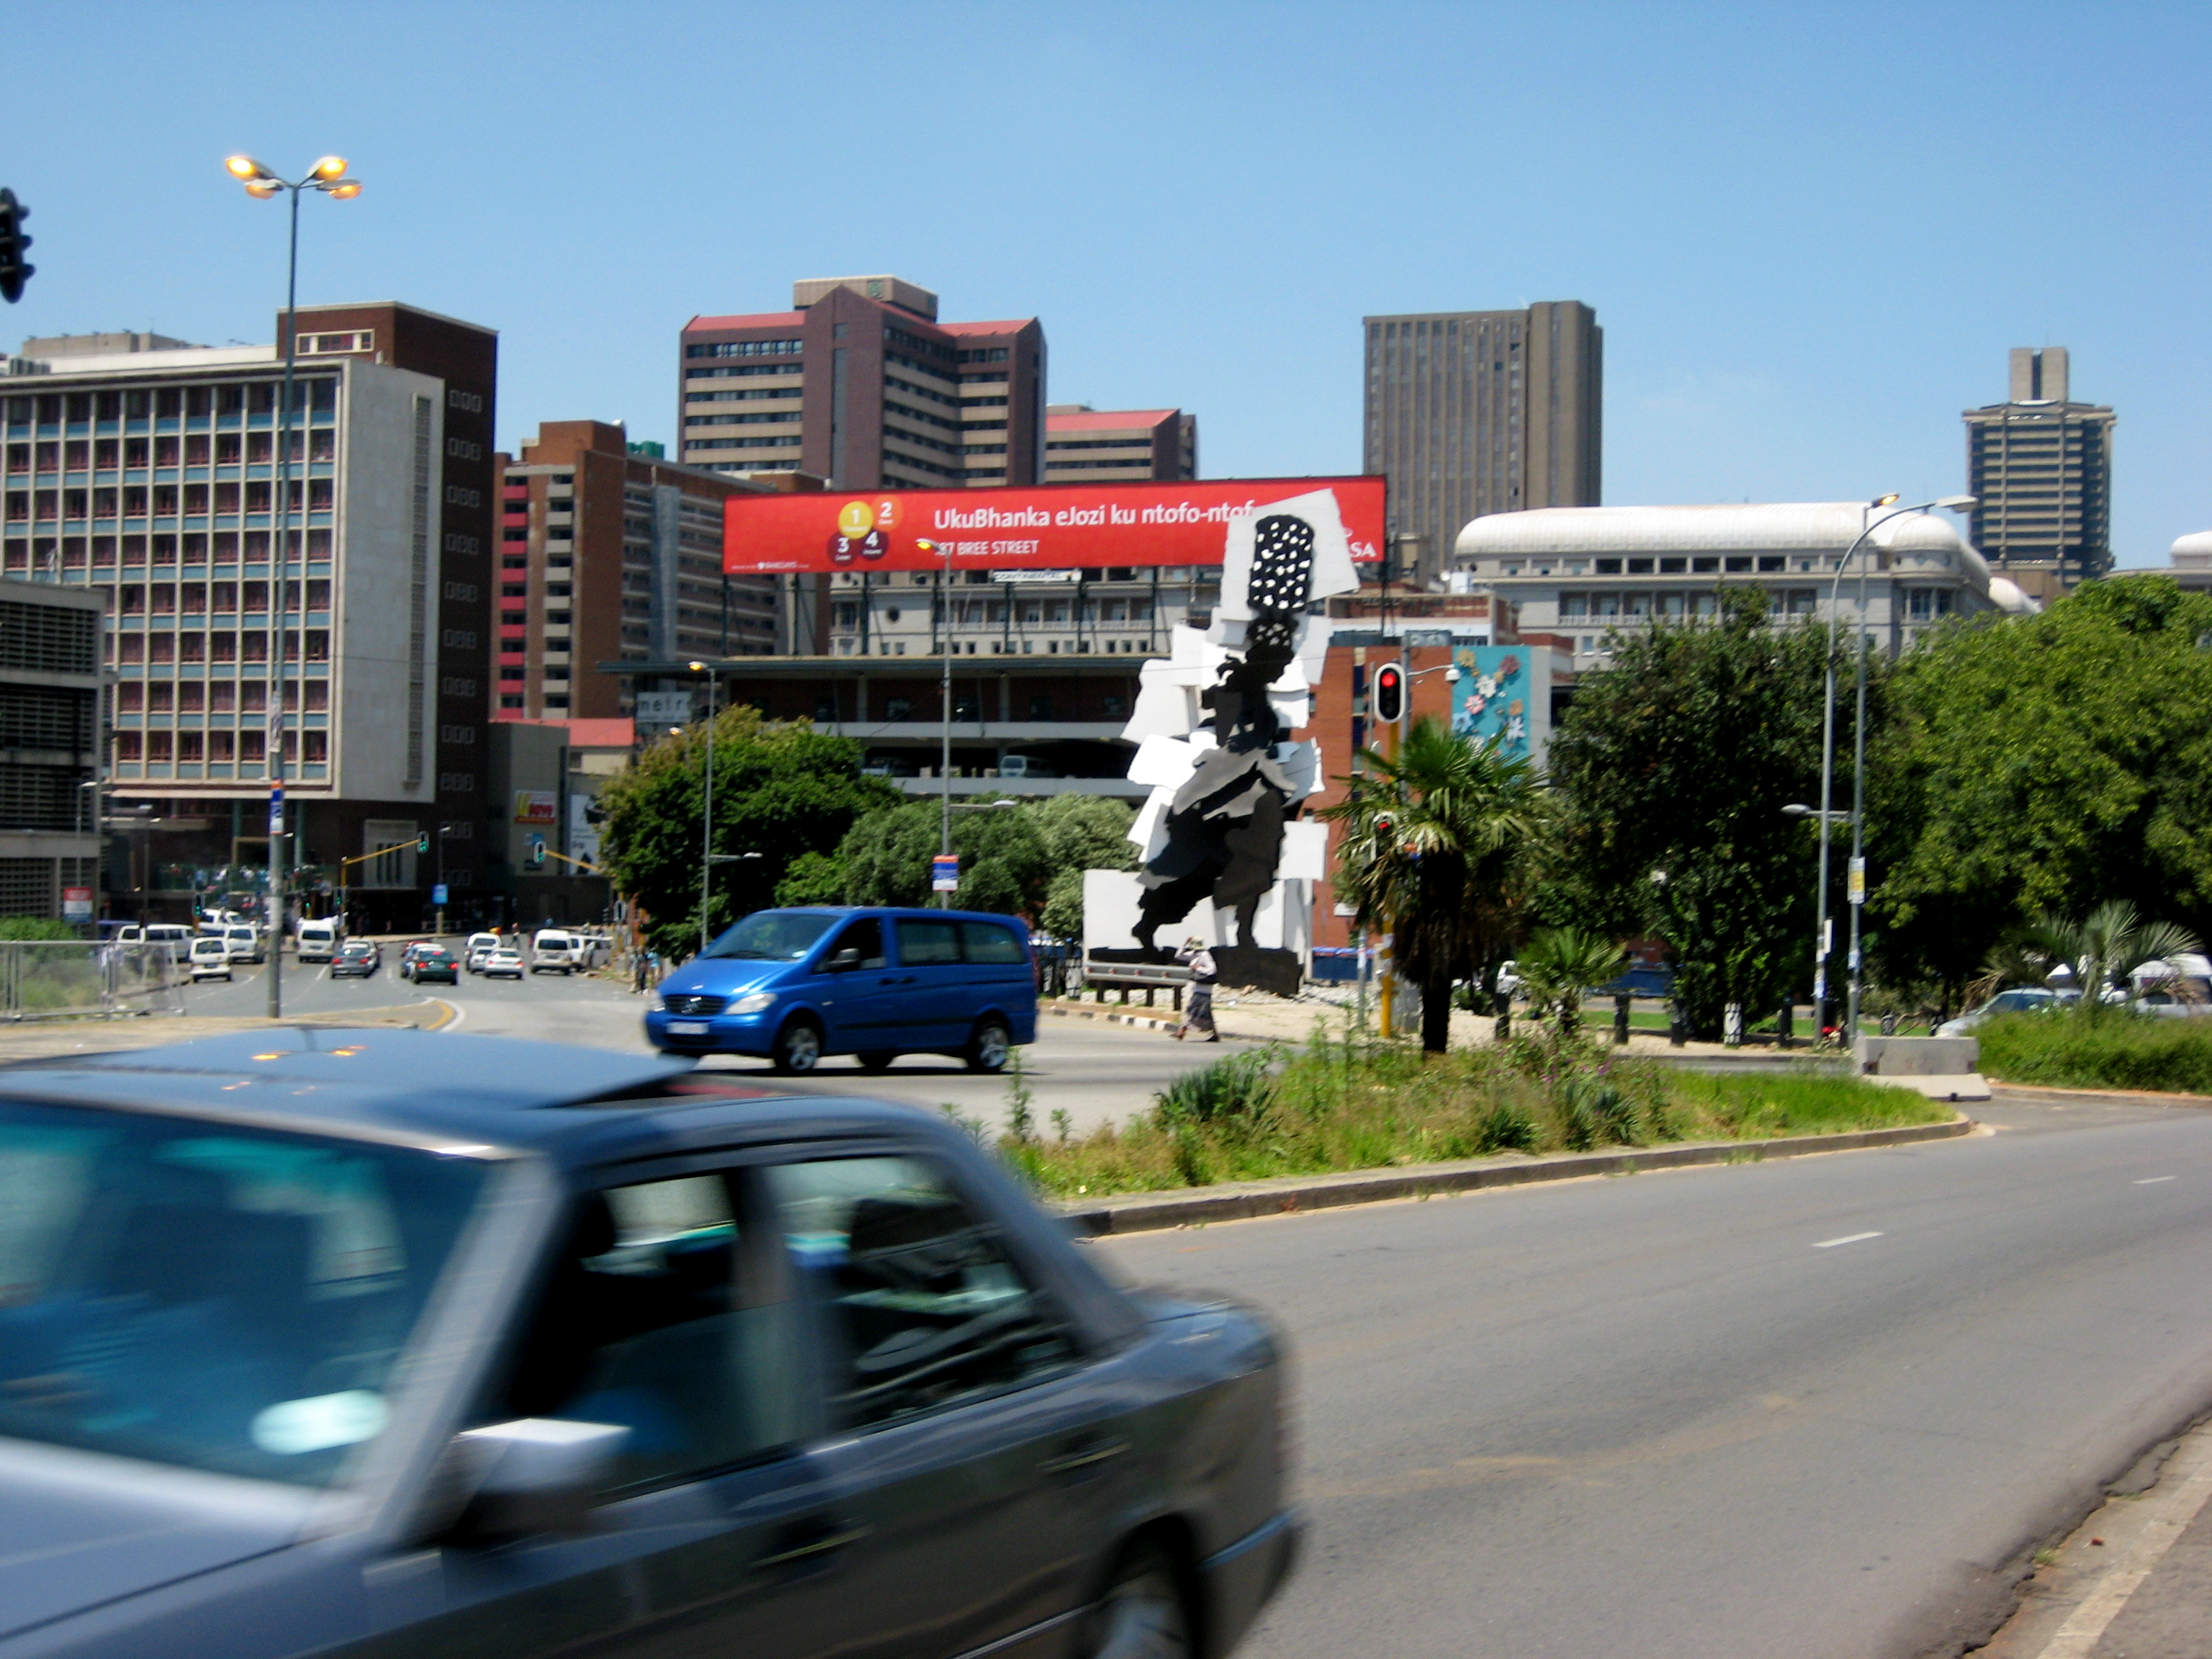 Cityscape with public sculpture